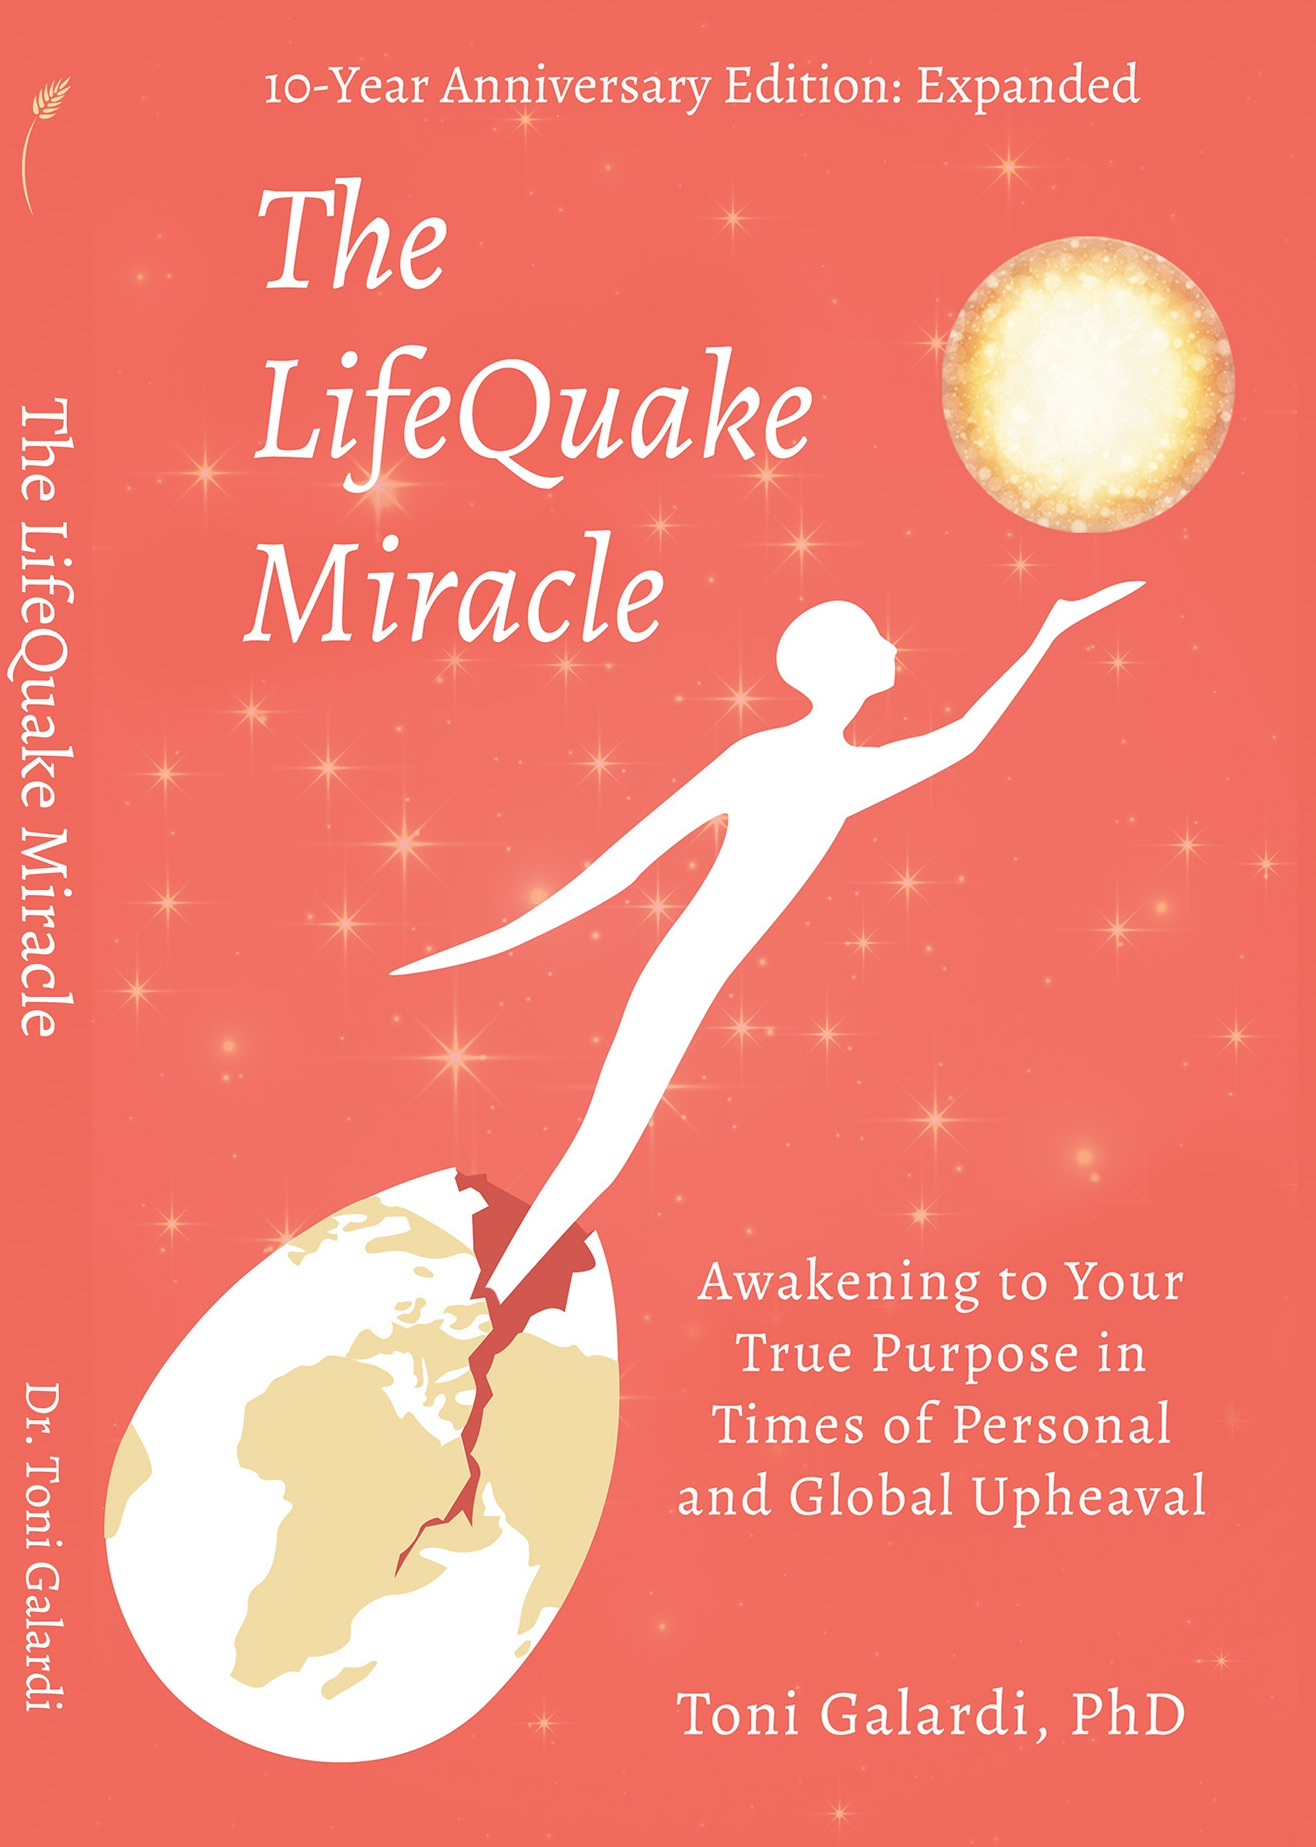 lifequake-book-cover-front